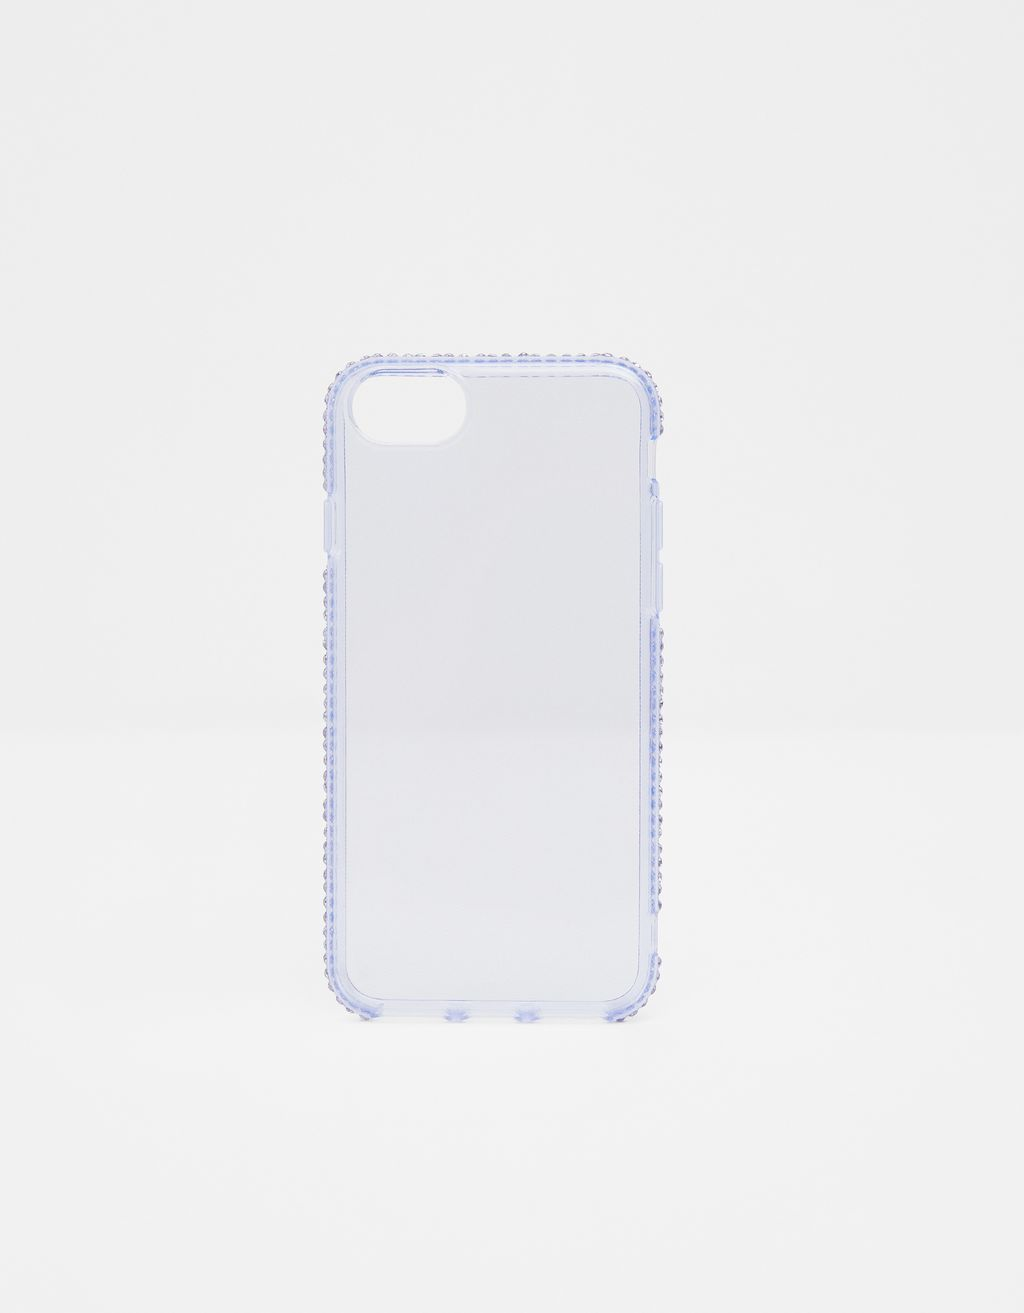 iPhone 6 plus / 7 plus / 8 plus case